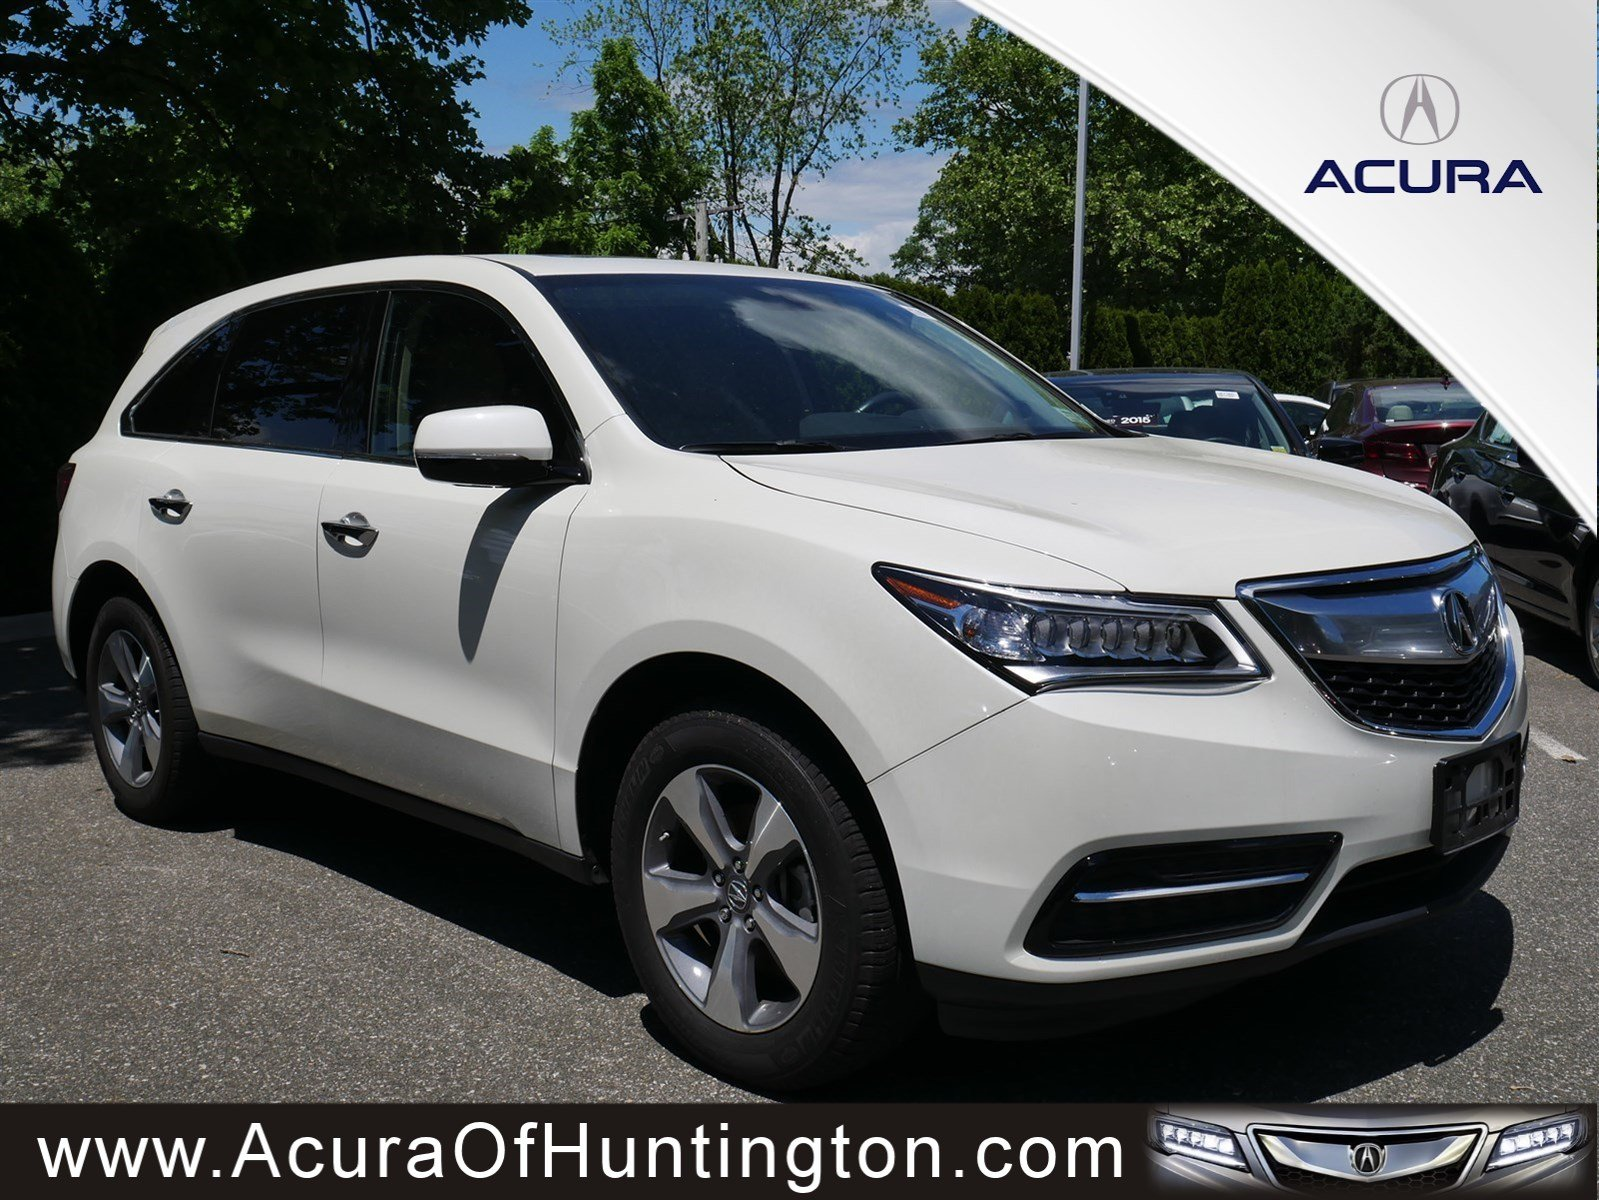 Certified PreOwned Acura MDX SHAWD Sport Utility In - Acura mdx pre owned